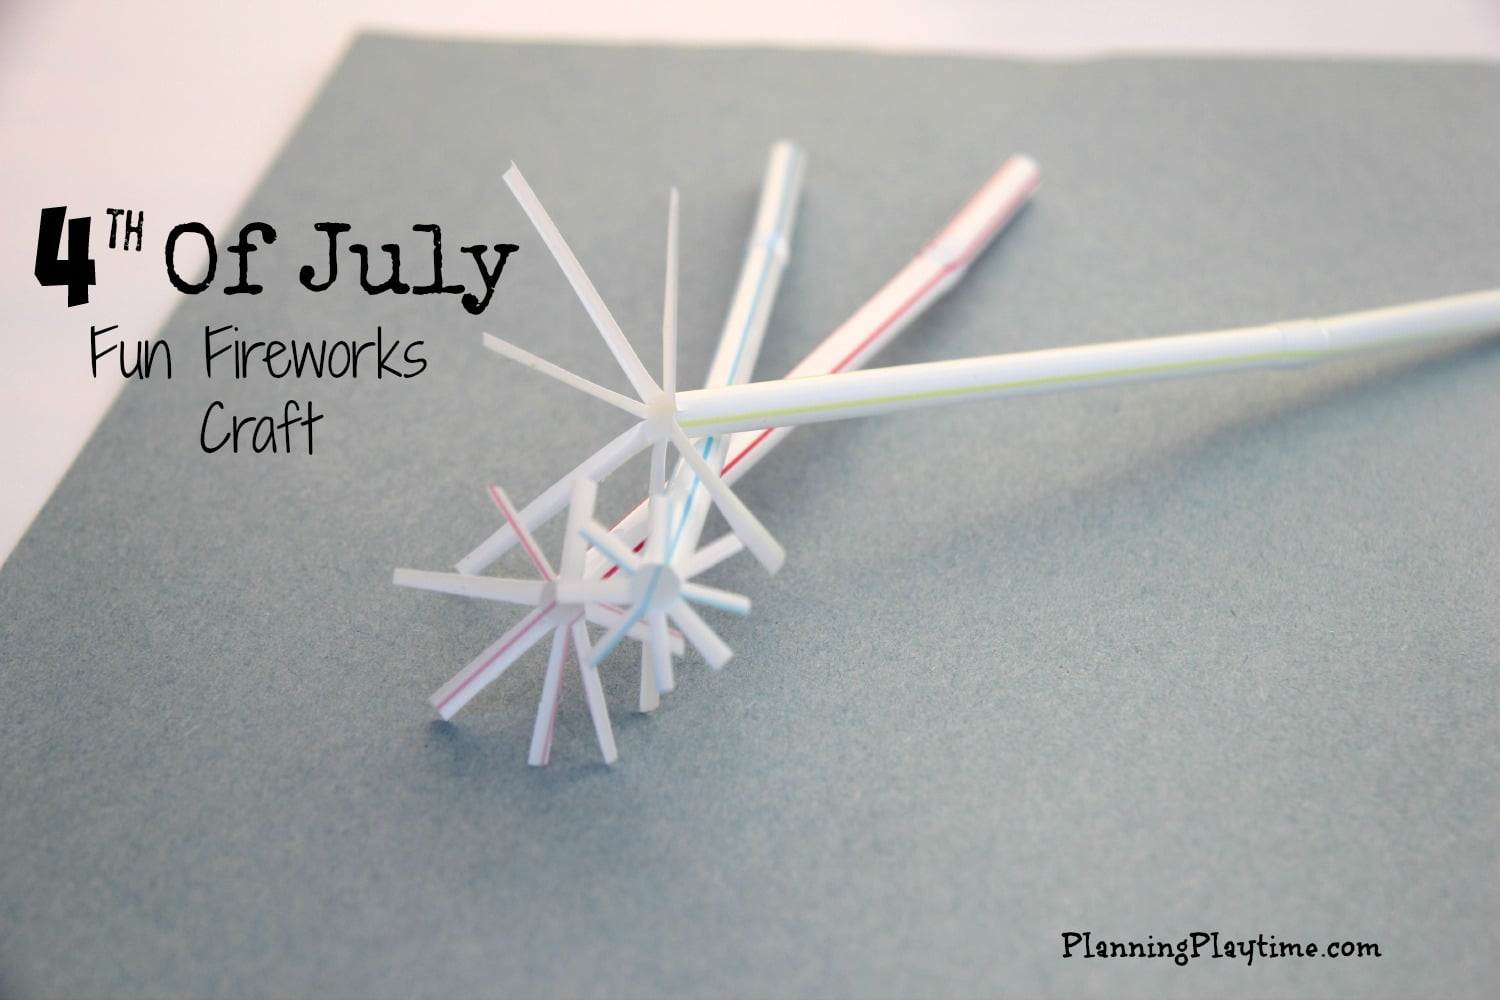 4th of July Fun Fireworks craft